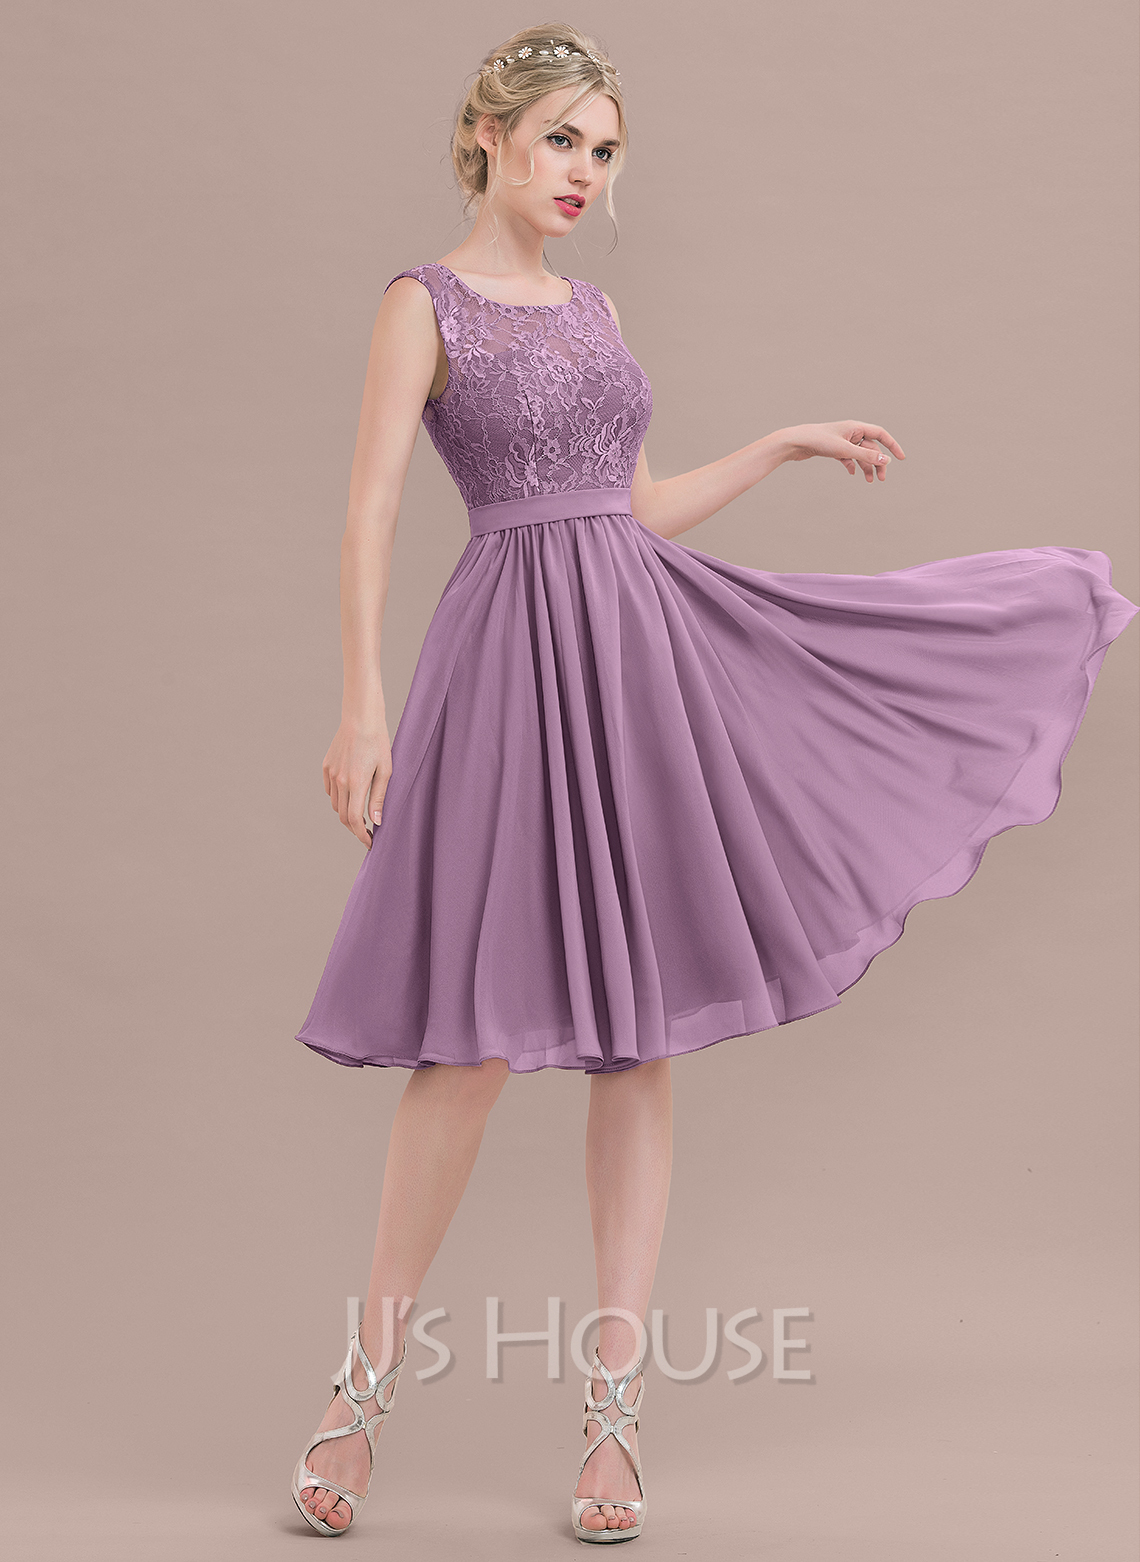 A-Line/Princess Square Neckline Knee-Length Chiffon Lace Bridesmaid Dress